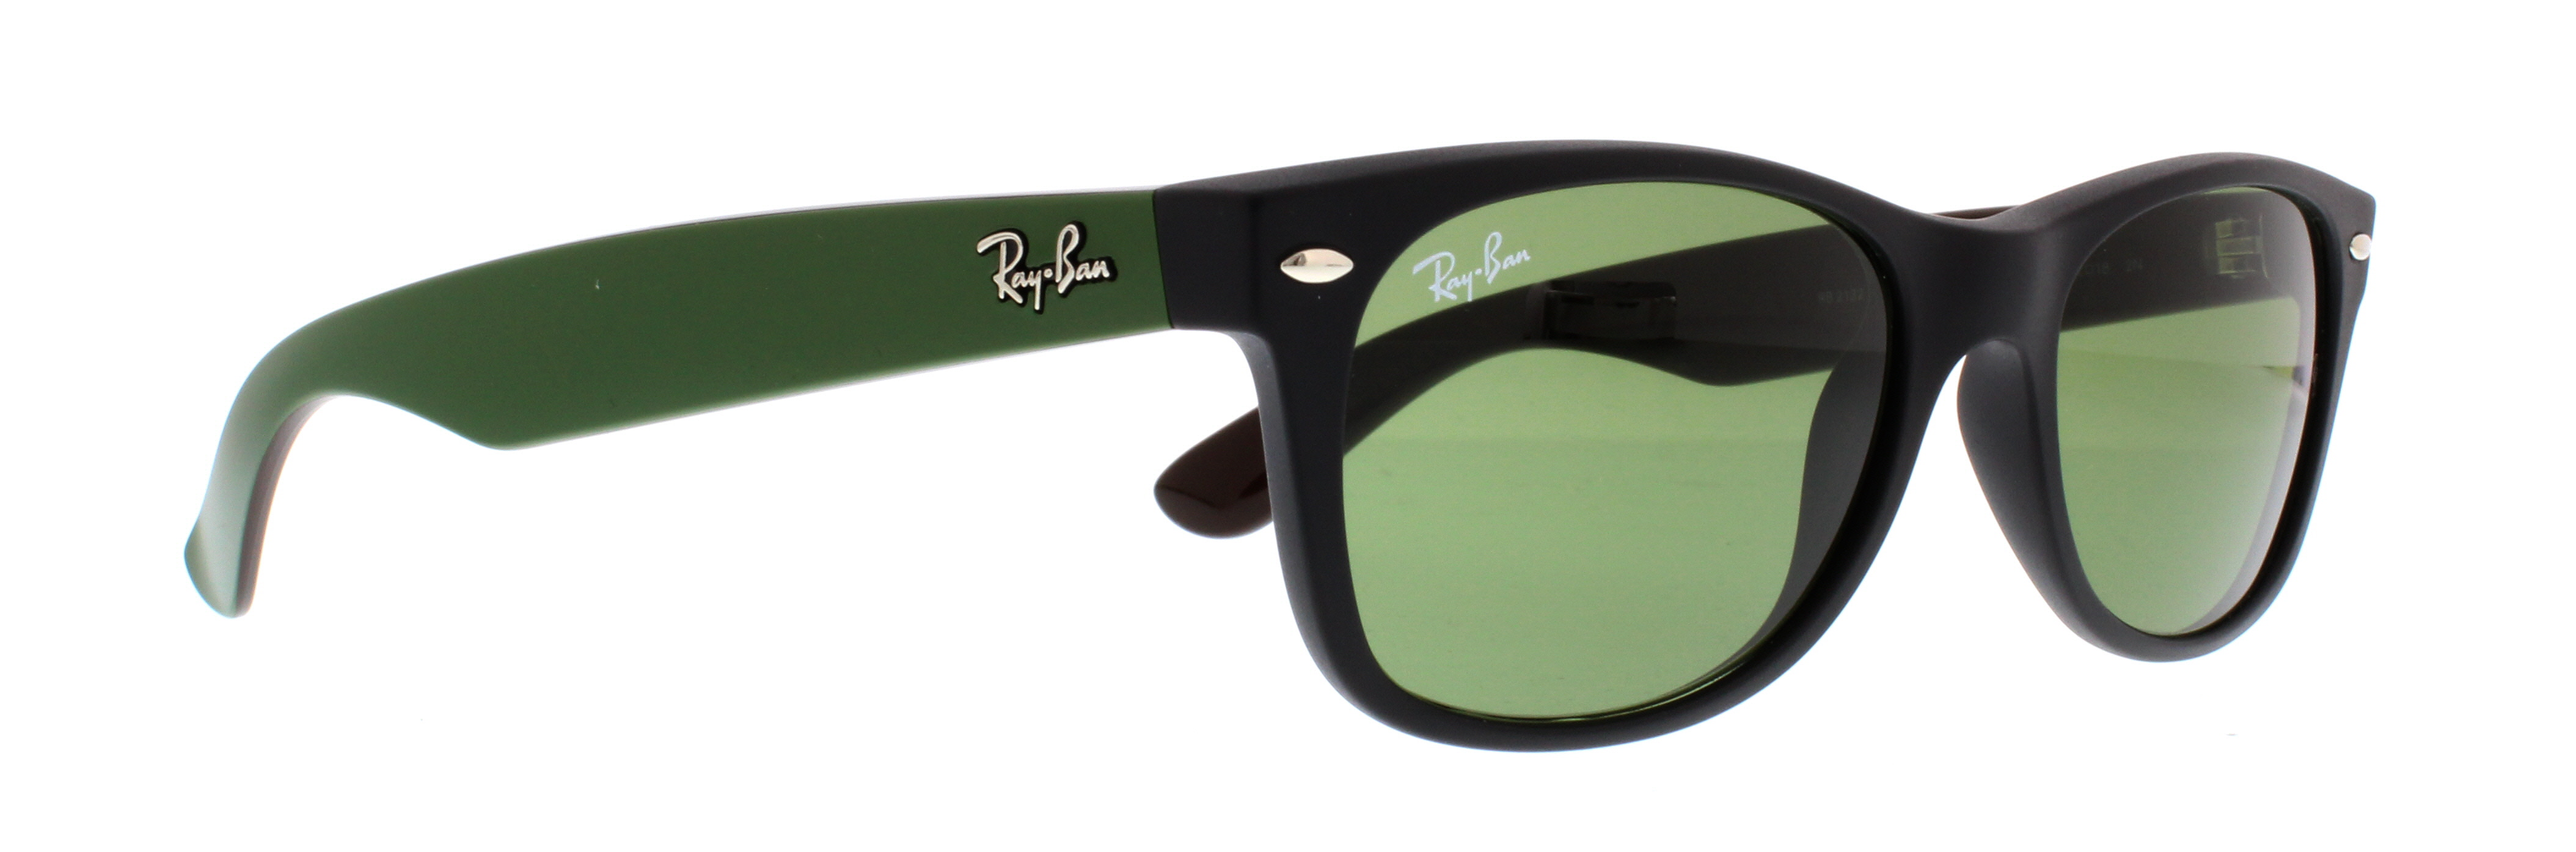 Ray-Ban Men\u0026#39;s New Wayfarer RB2132-901-52 Black Wayfarer Sunglasses - Walmart.com